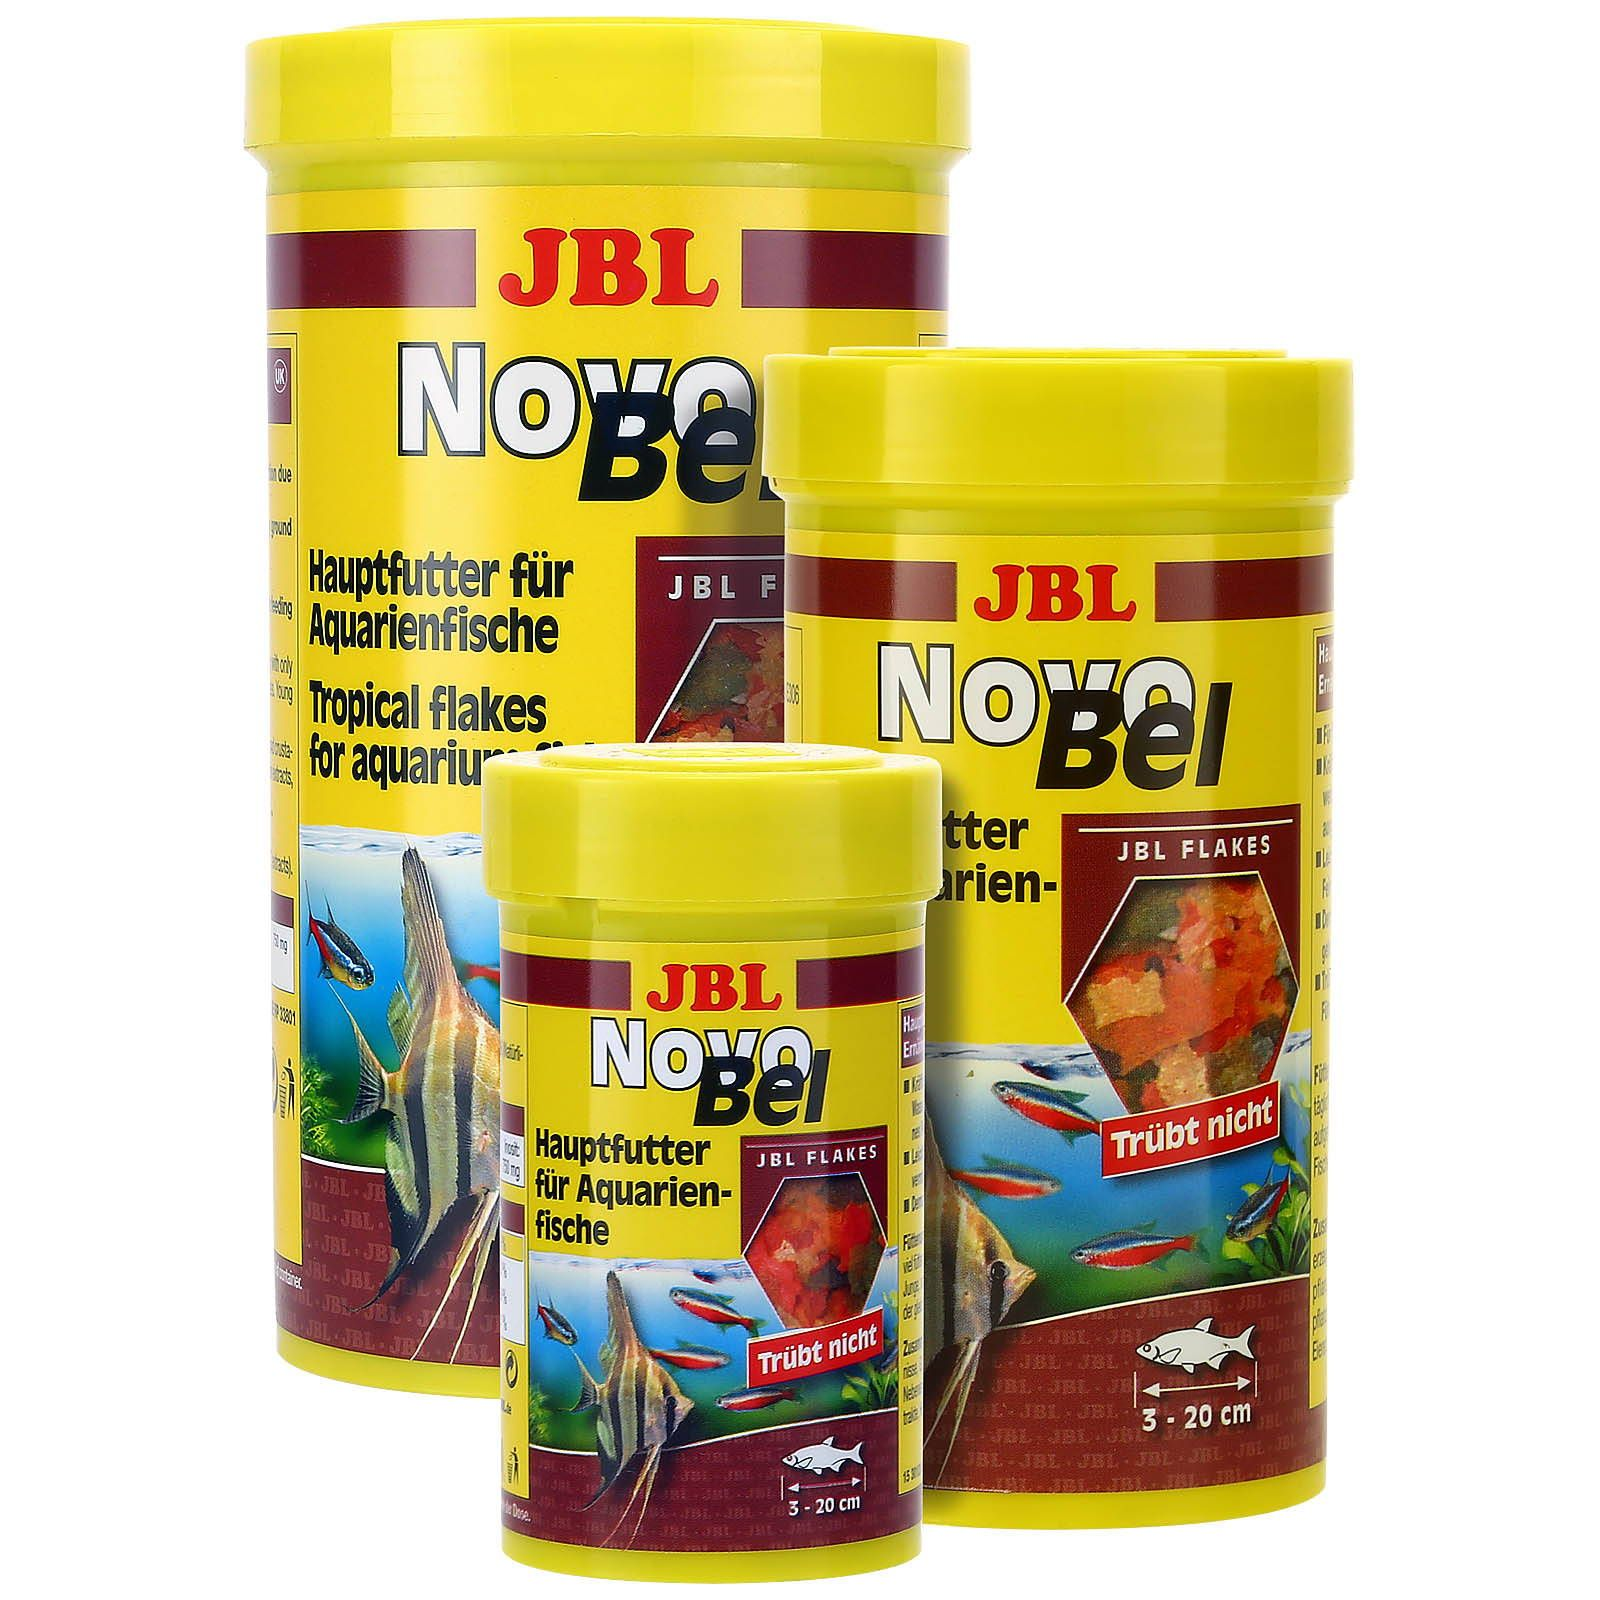 JBL - NovoBel - 1.000 ml